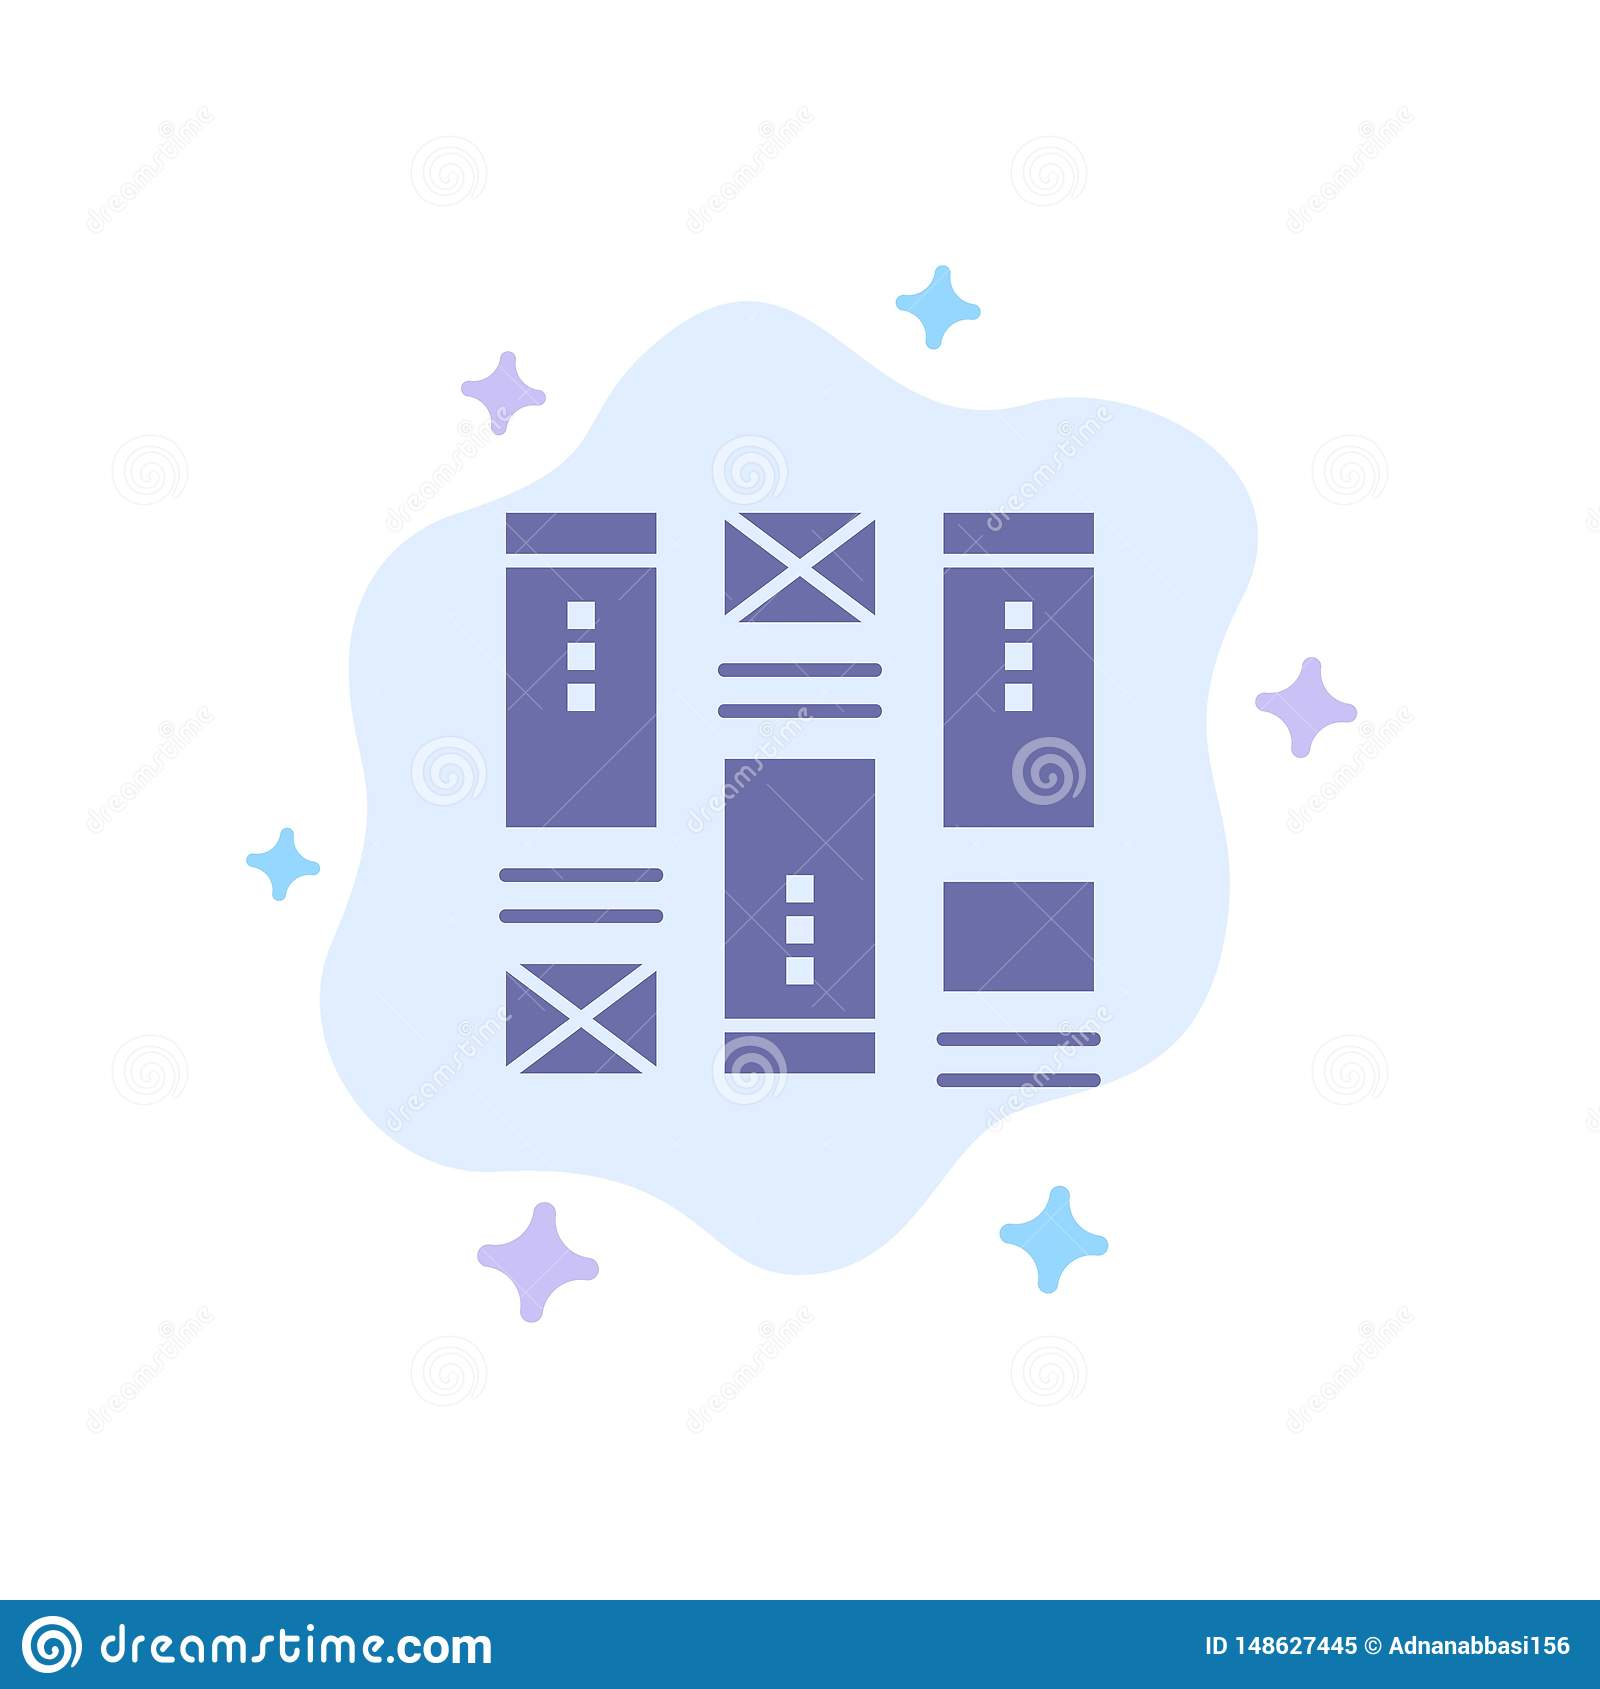 Wire framing, Sketching, Wireframe, Idea Blue Icon on Abstract Cloud Background